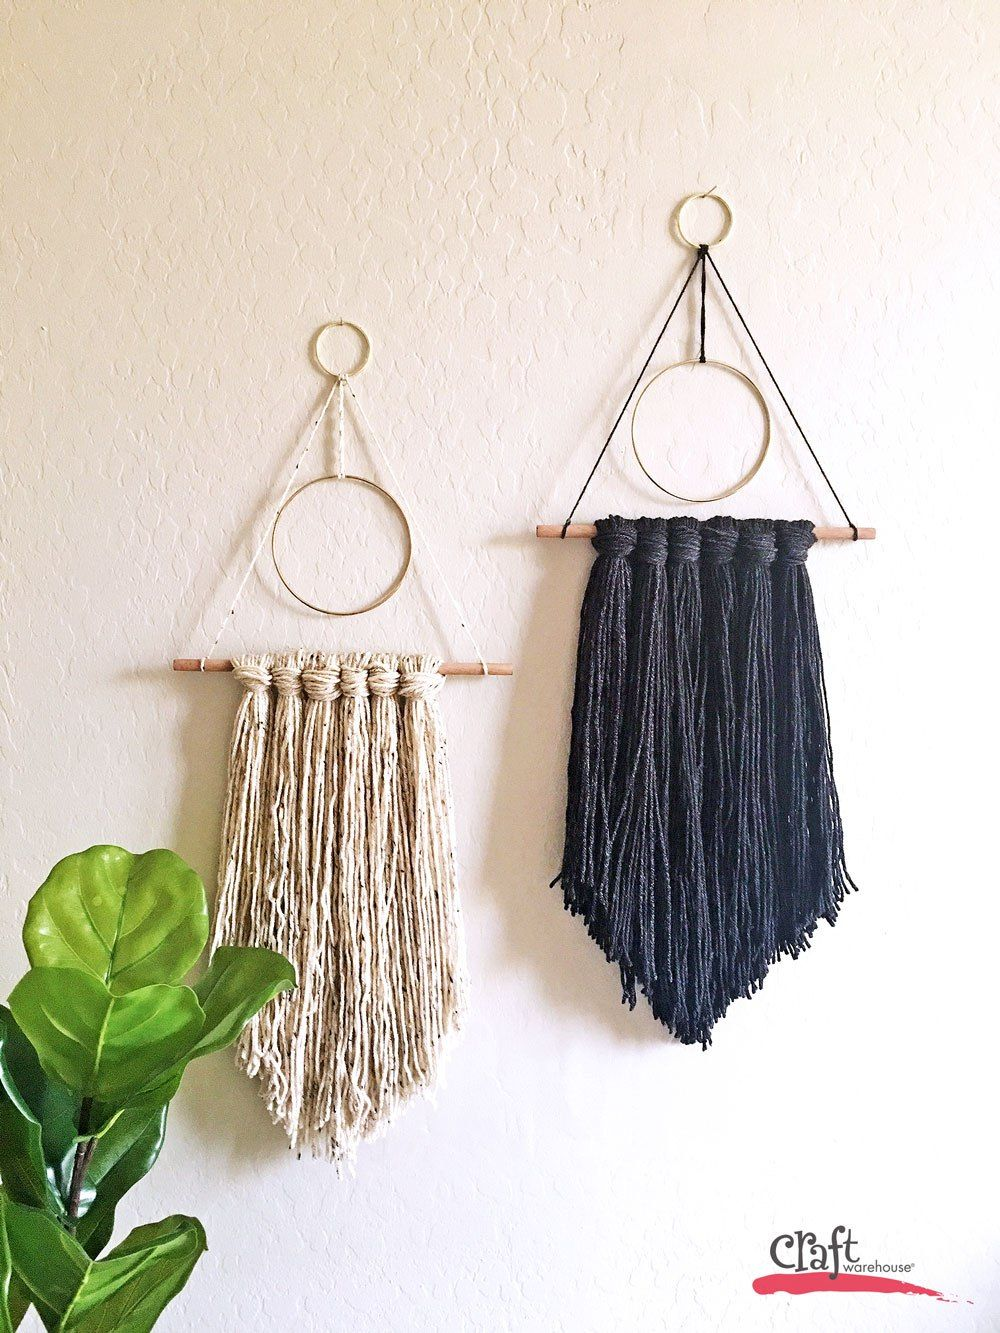 Gold hoop yarn wall hangings from Craft Warehouse